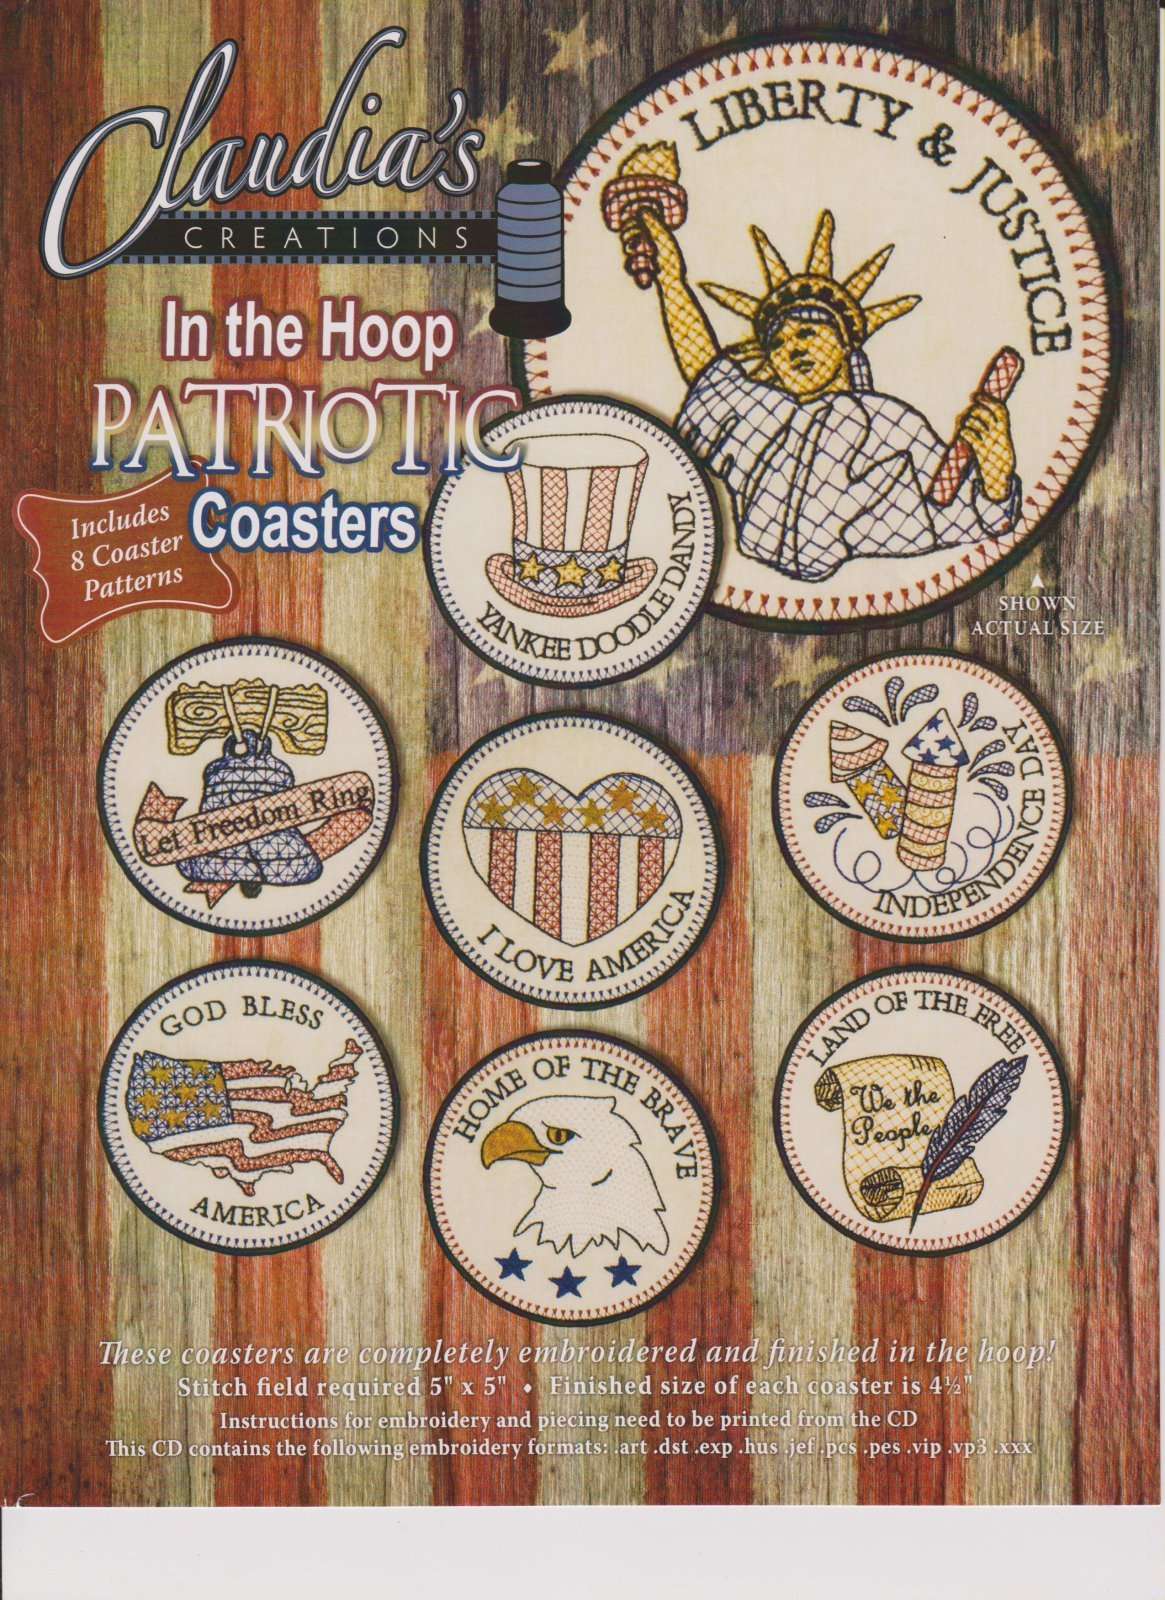 From Claudia/'s Creations PATRIOTIC COASTERS HAND EMBROIDERY PATTERN CD